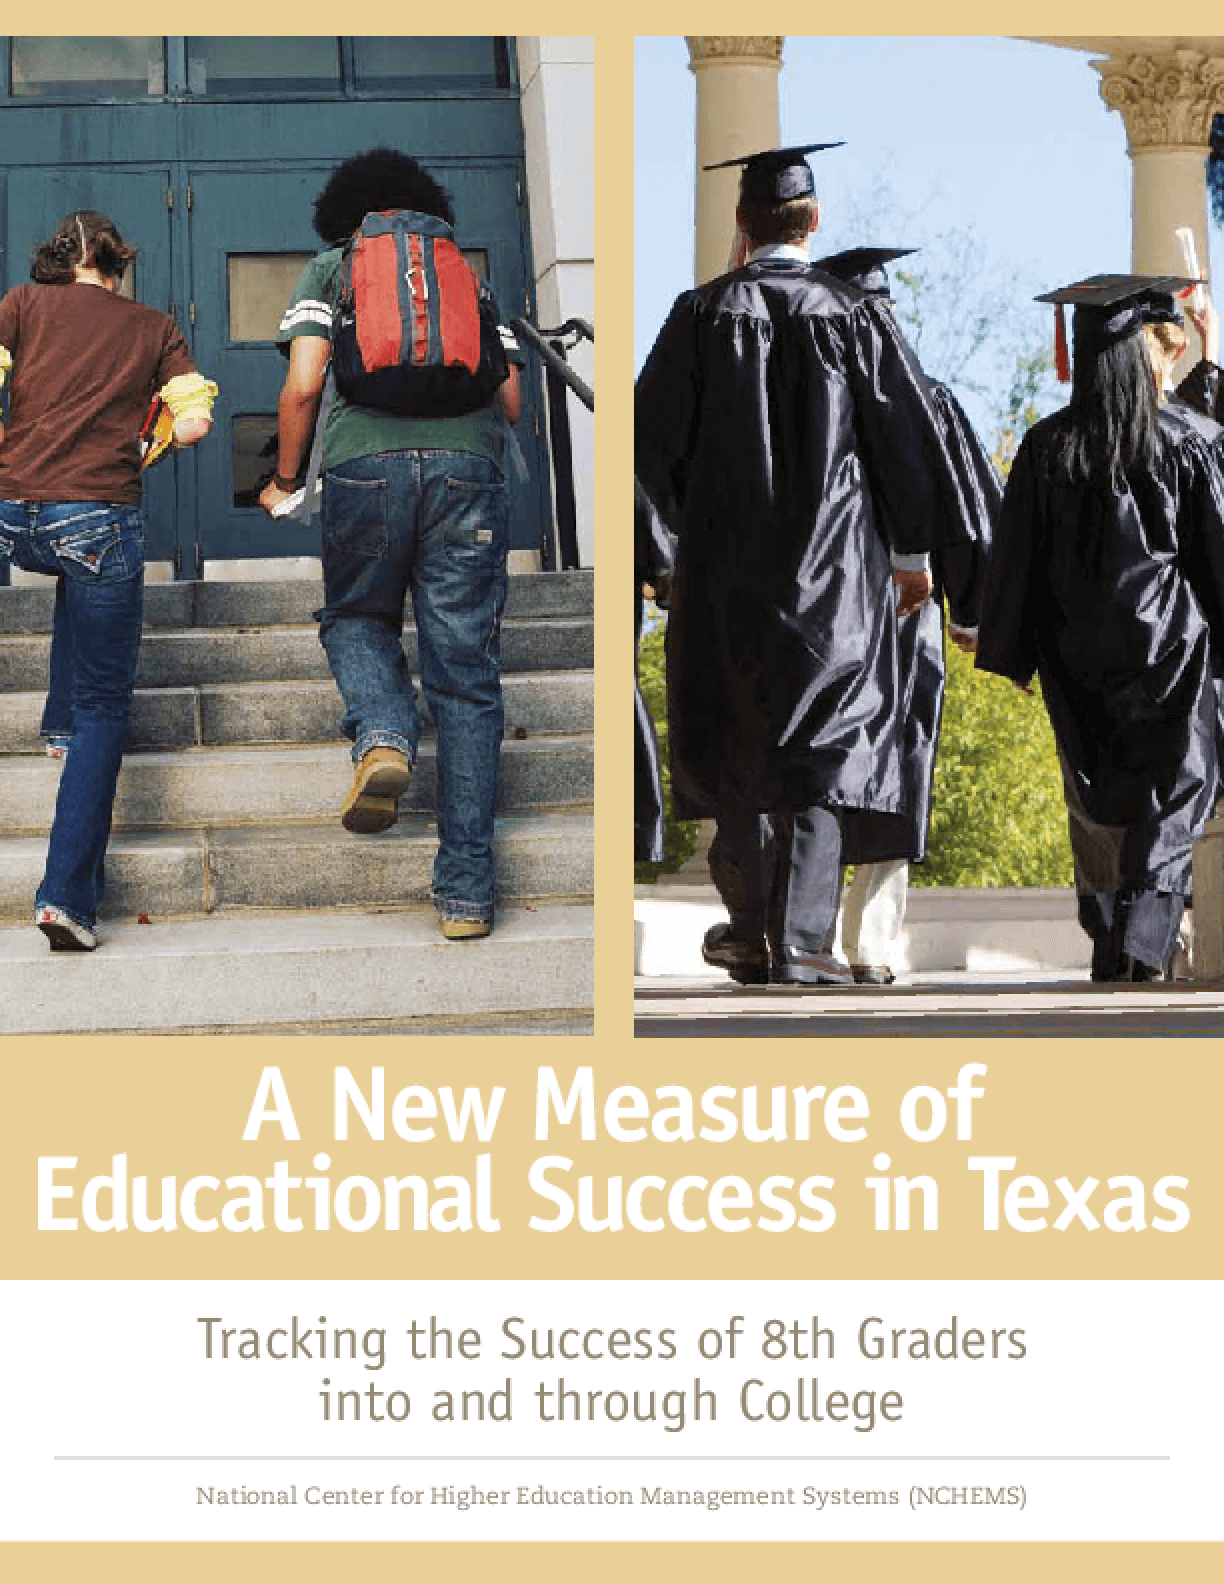 New Measure of Educational Success in Texas, A